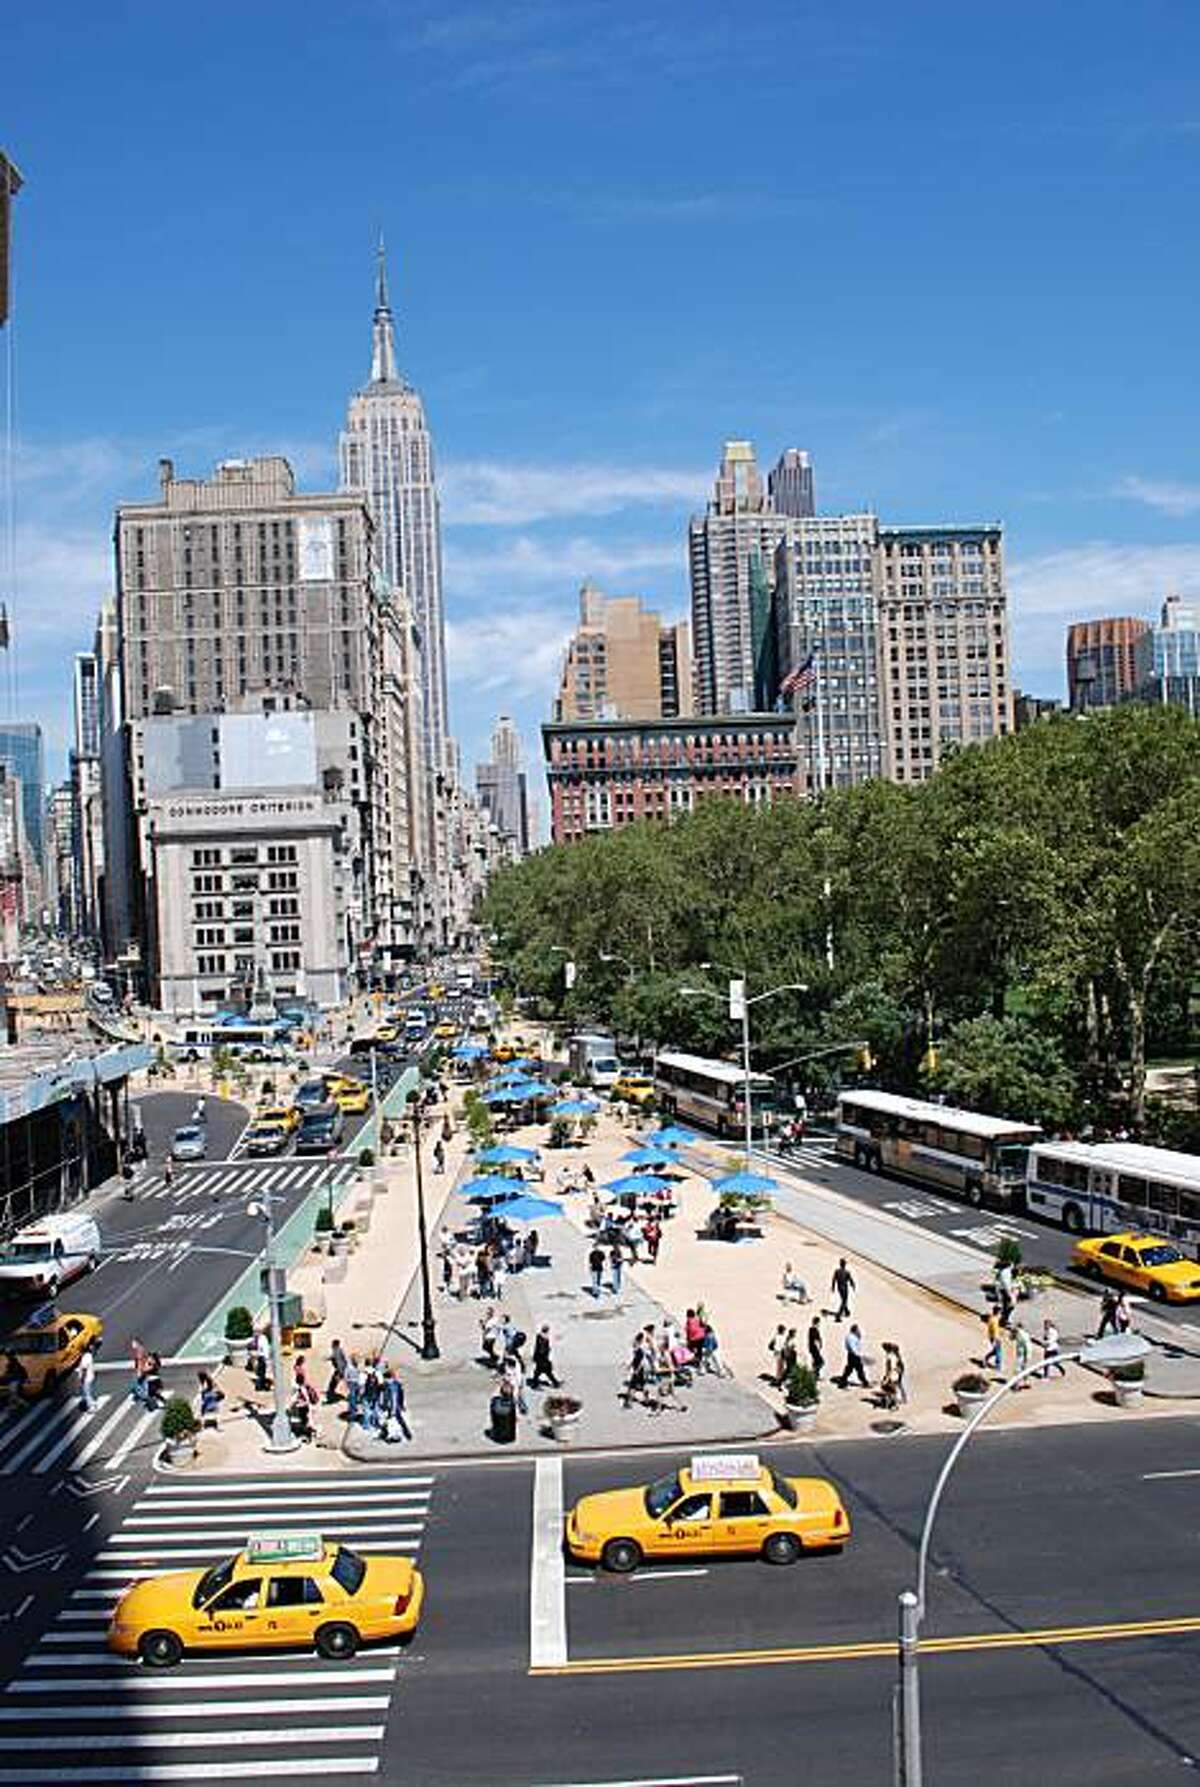 Nearly one acre of traffic lanes of Fifth Avenue and Broadway across from Madison Square Park in New York have been converted into public spaces -- an example of how Manhattanization these days has good connotations as well as bed.